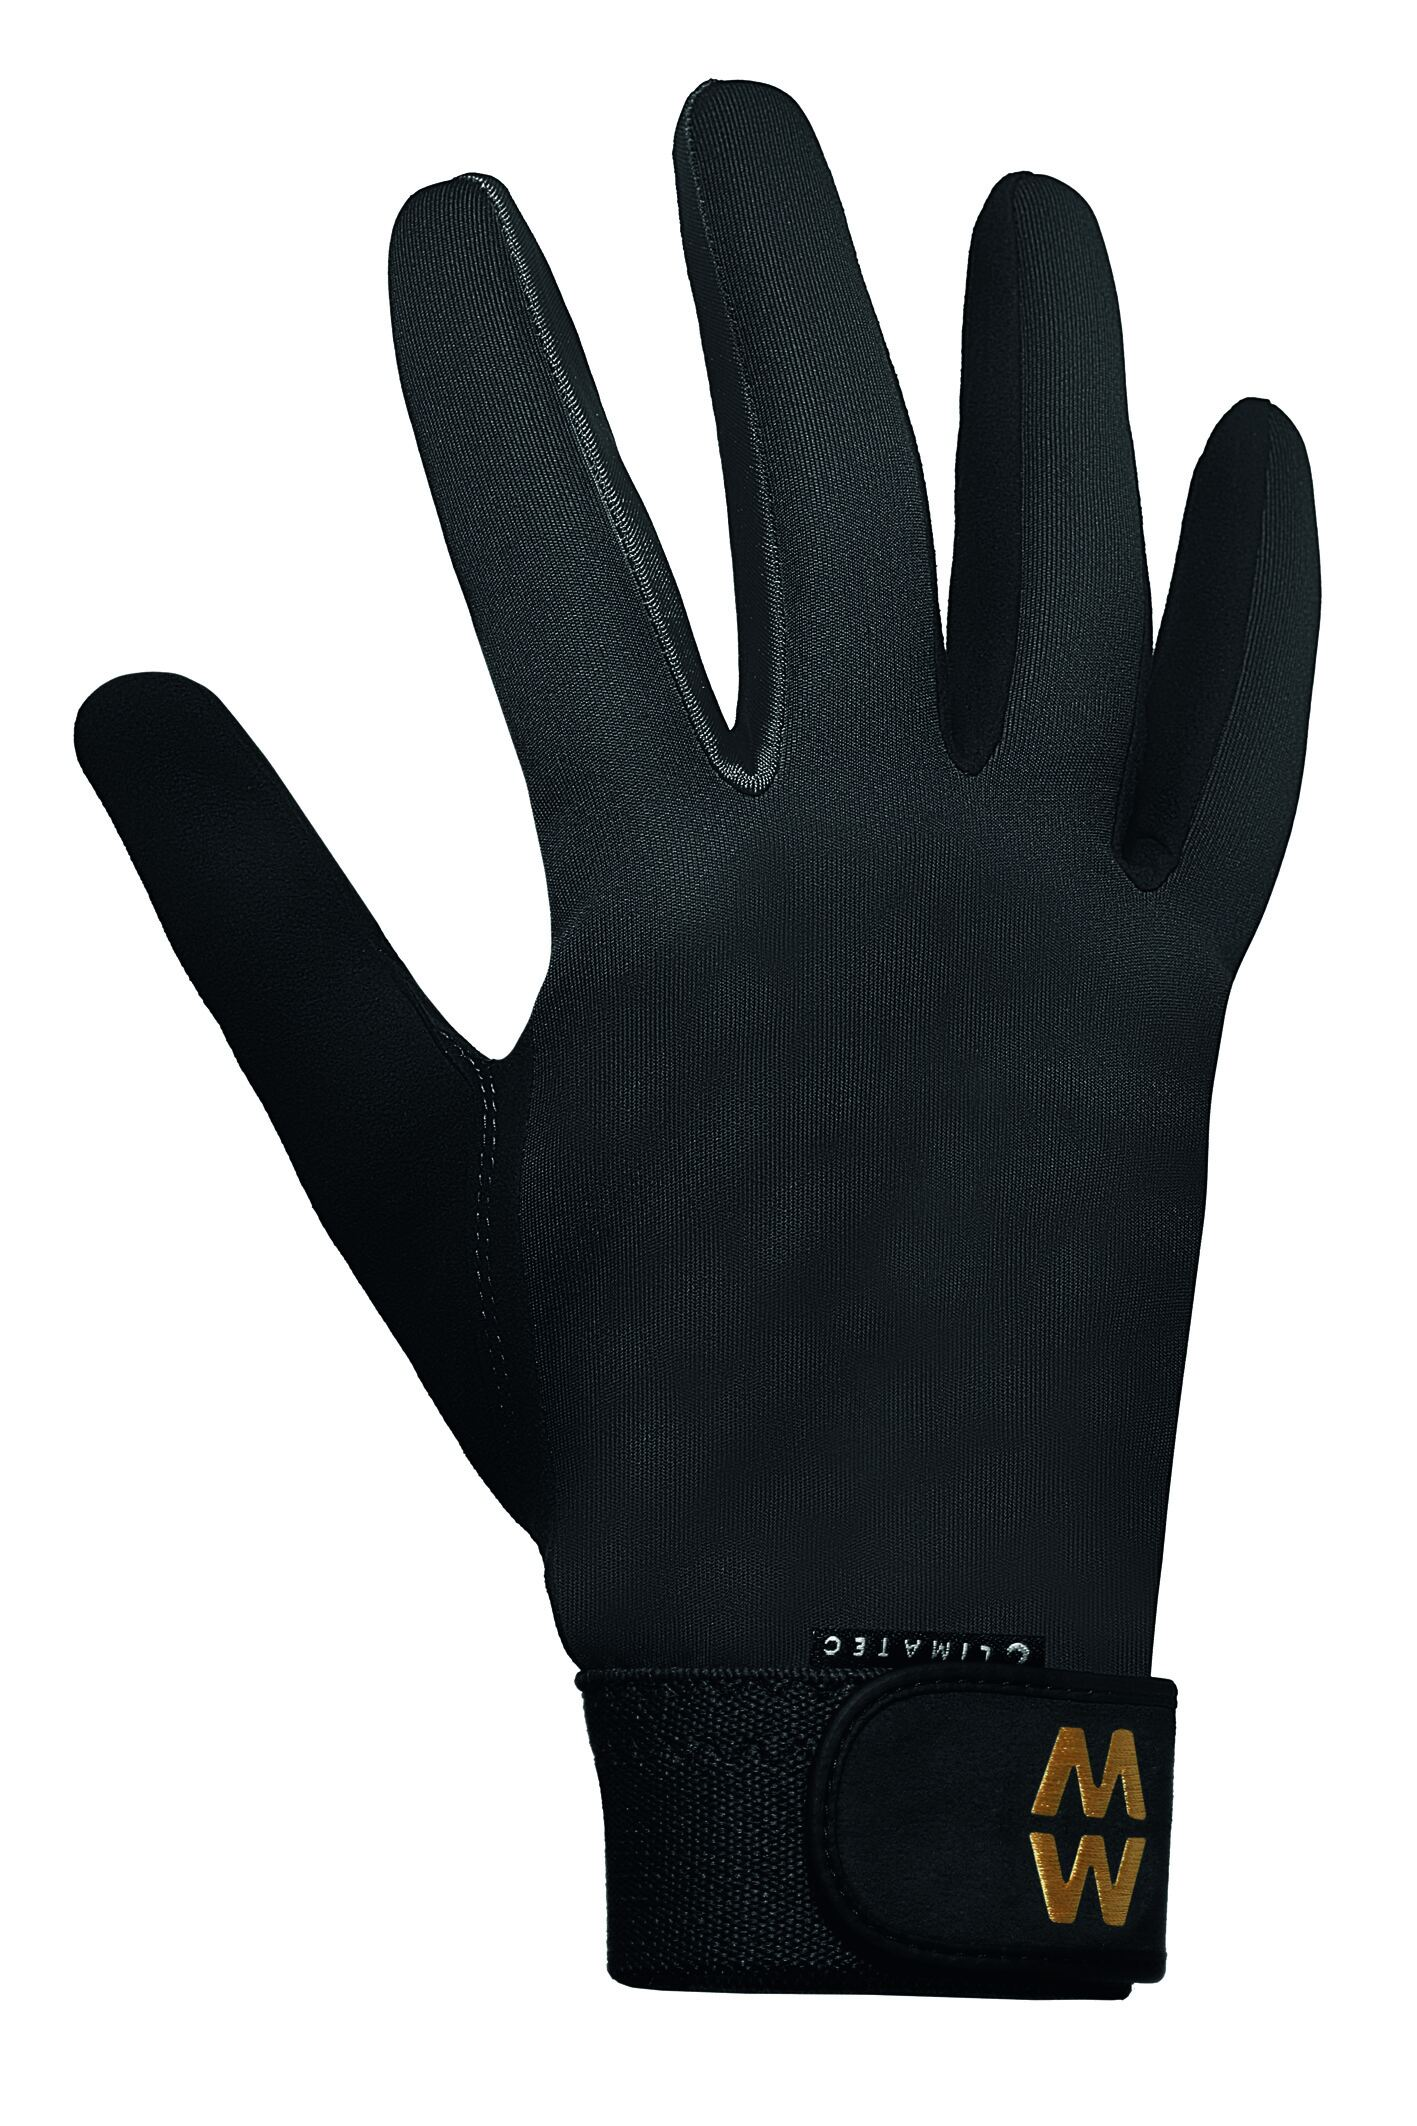 Image of 1 Pair Black MacWet Long Climatec Sports Gloves Unisex 11.5 Unisex - Macwet